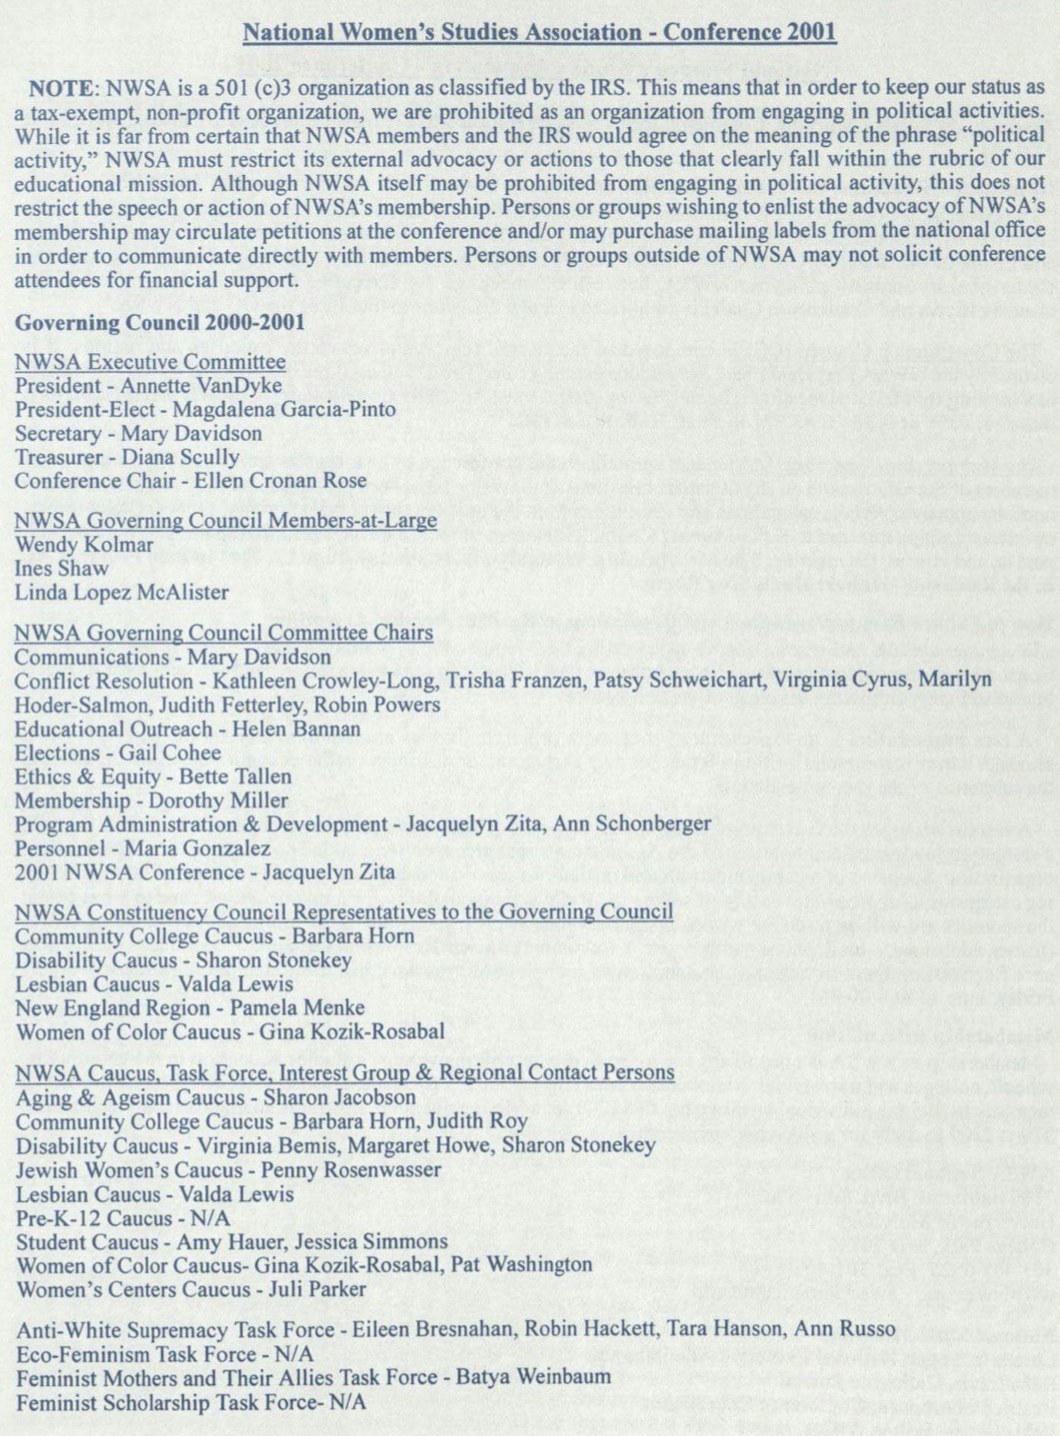 2001 Governance Members